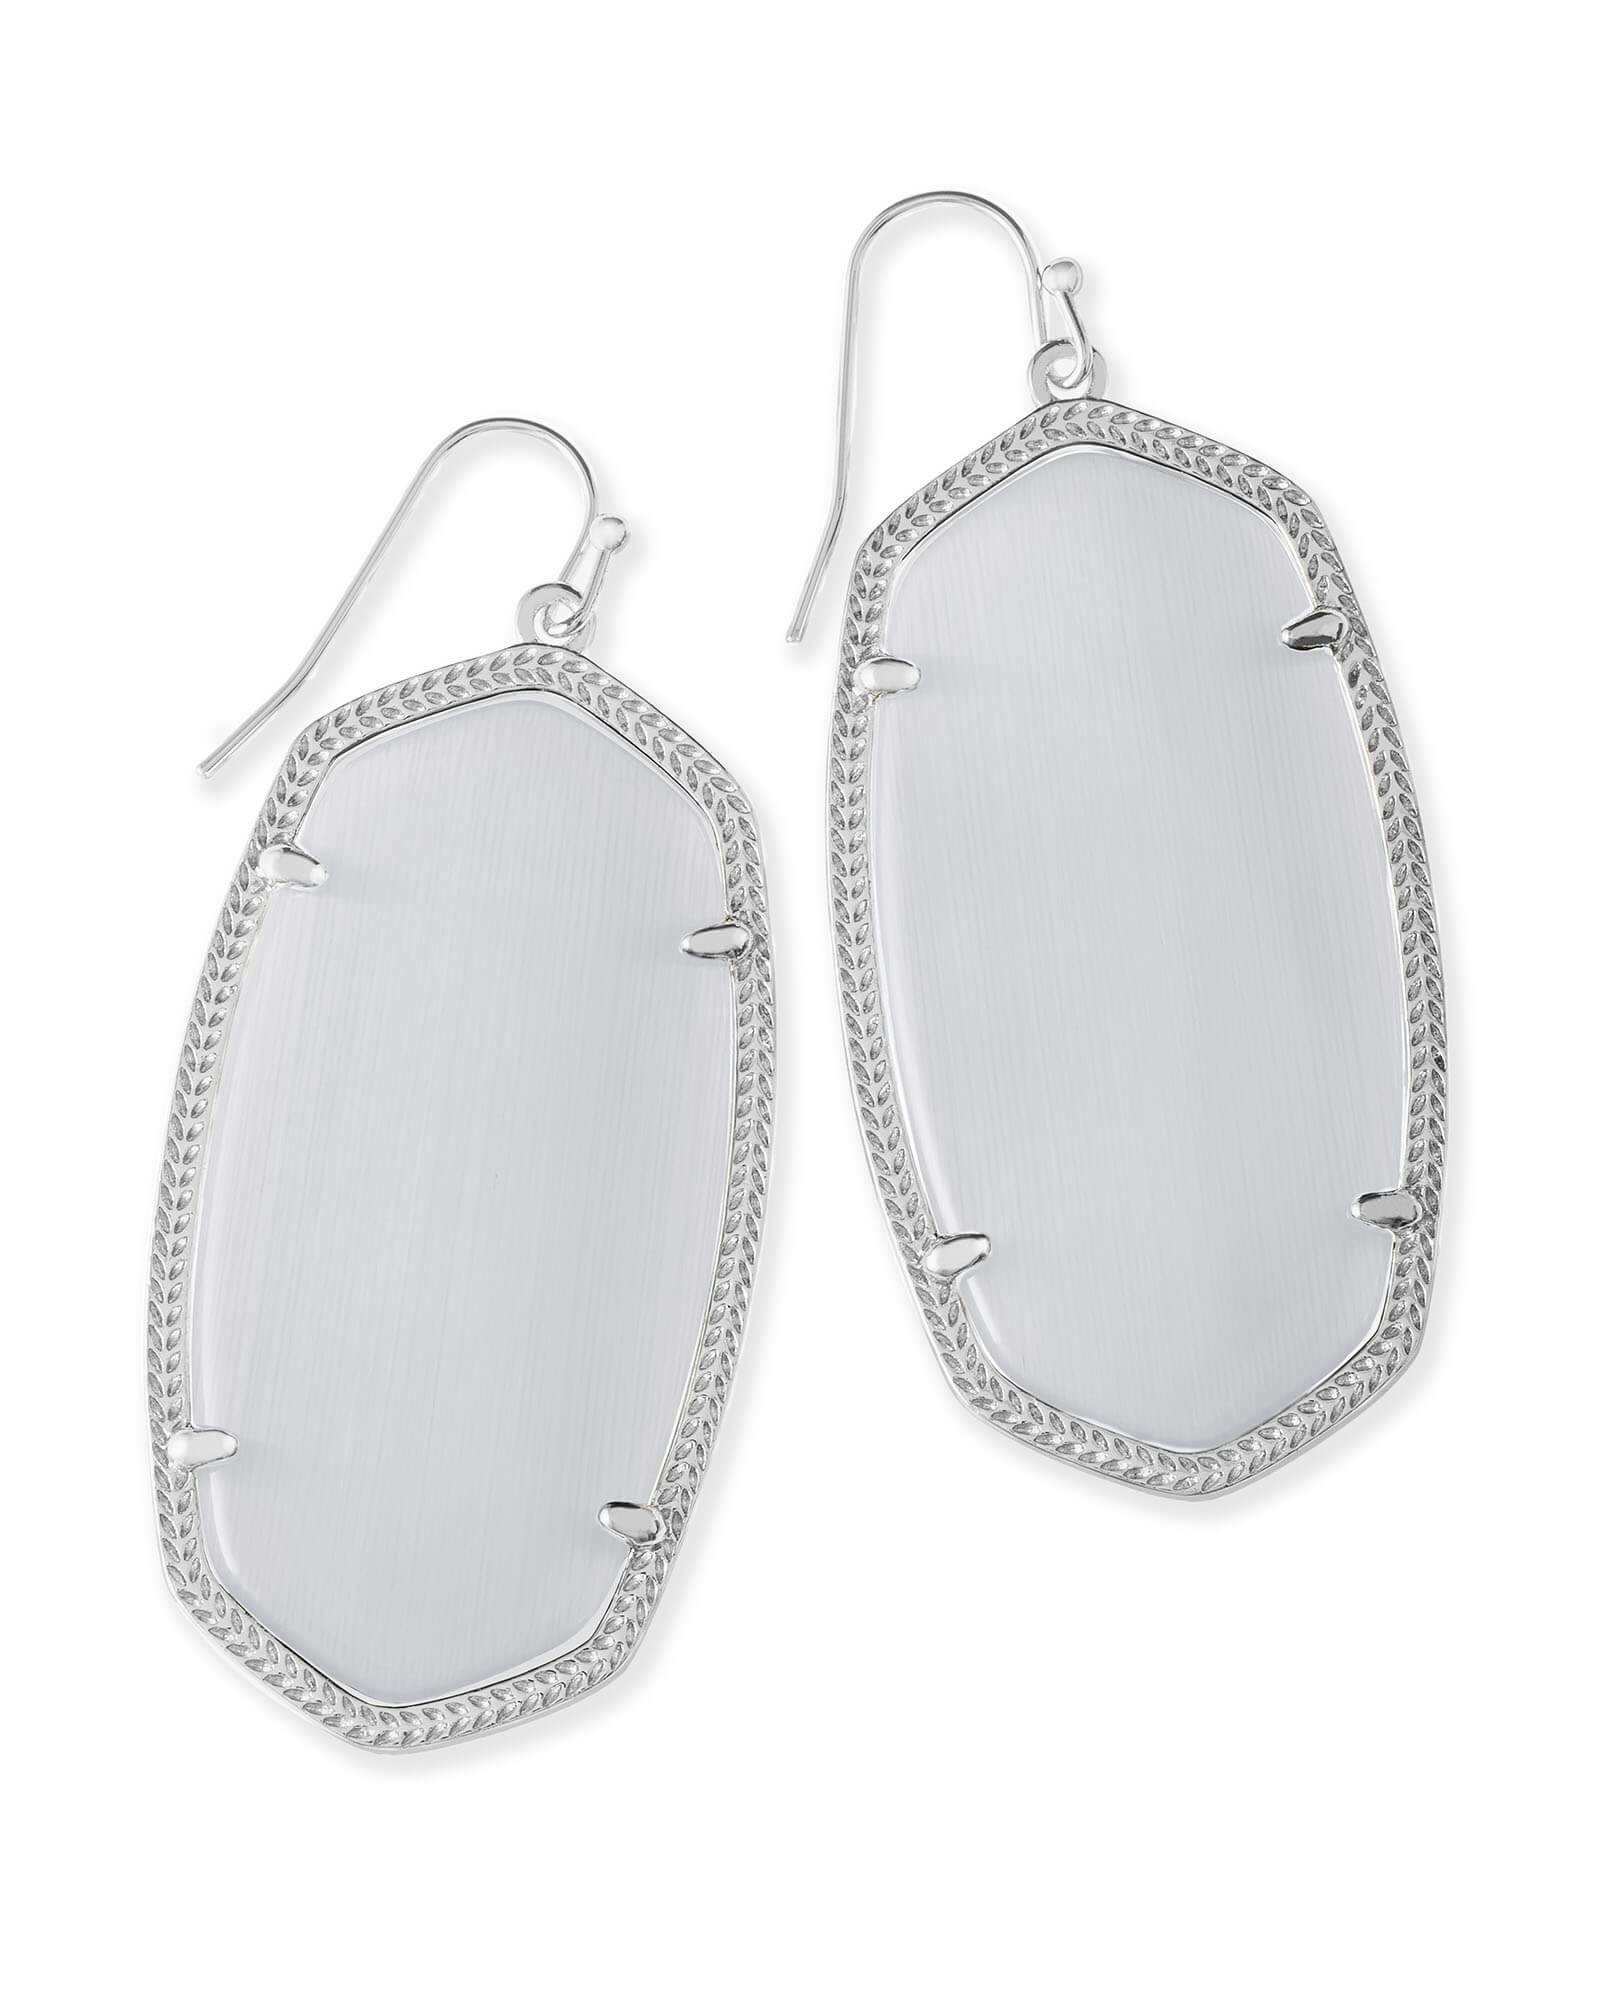 Danielle Statement Earrings in Silver